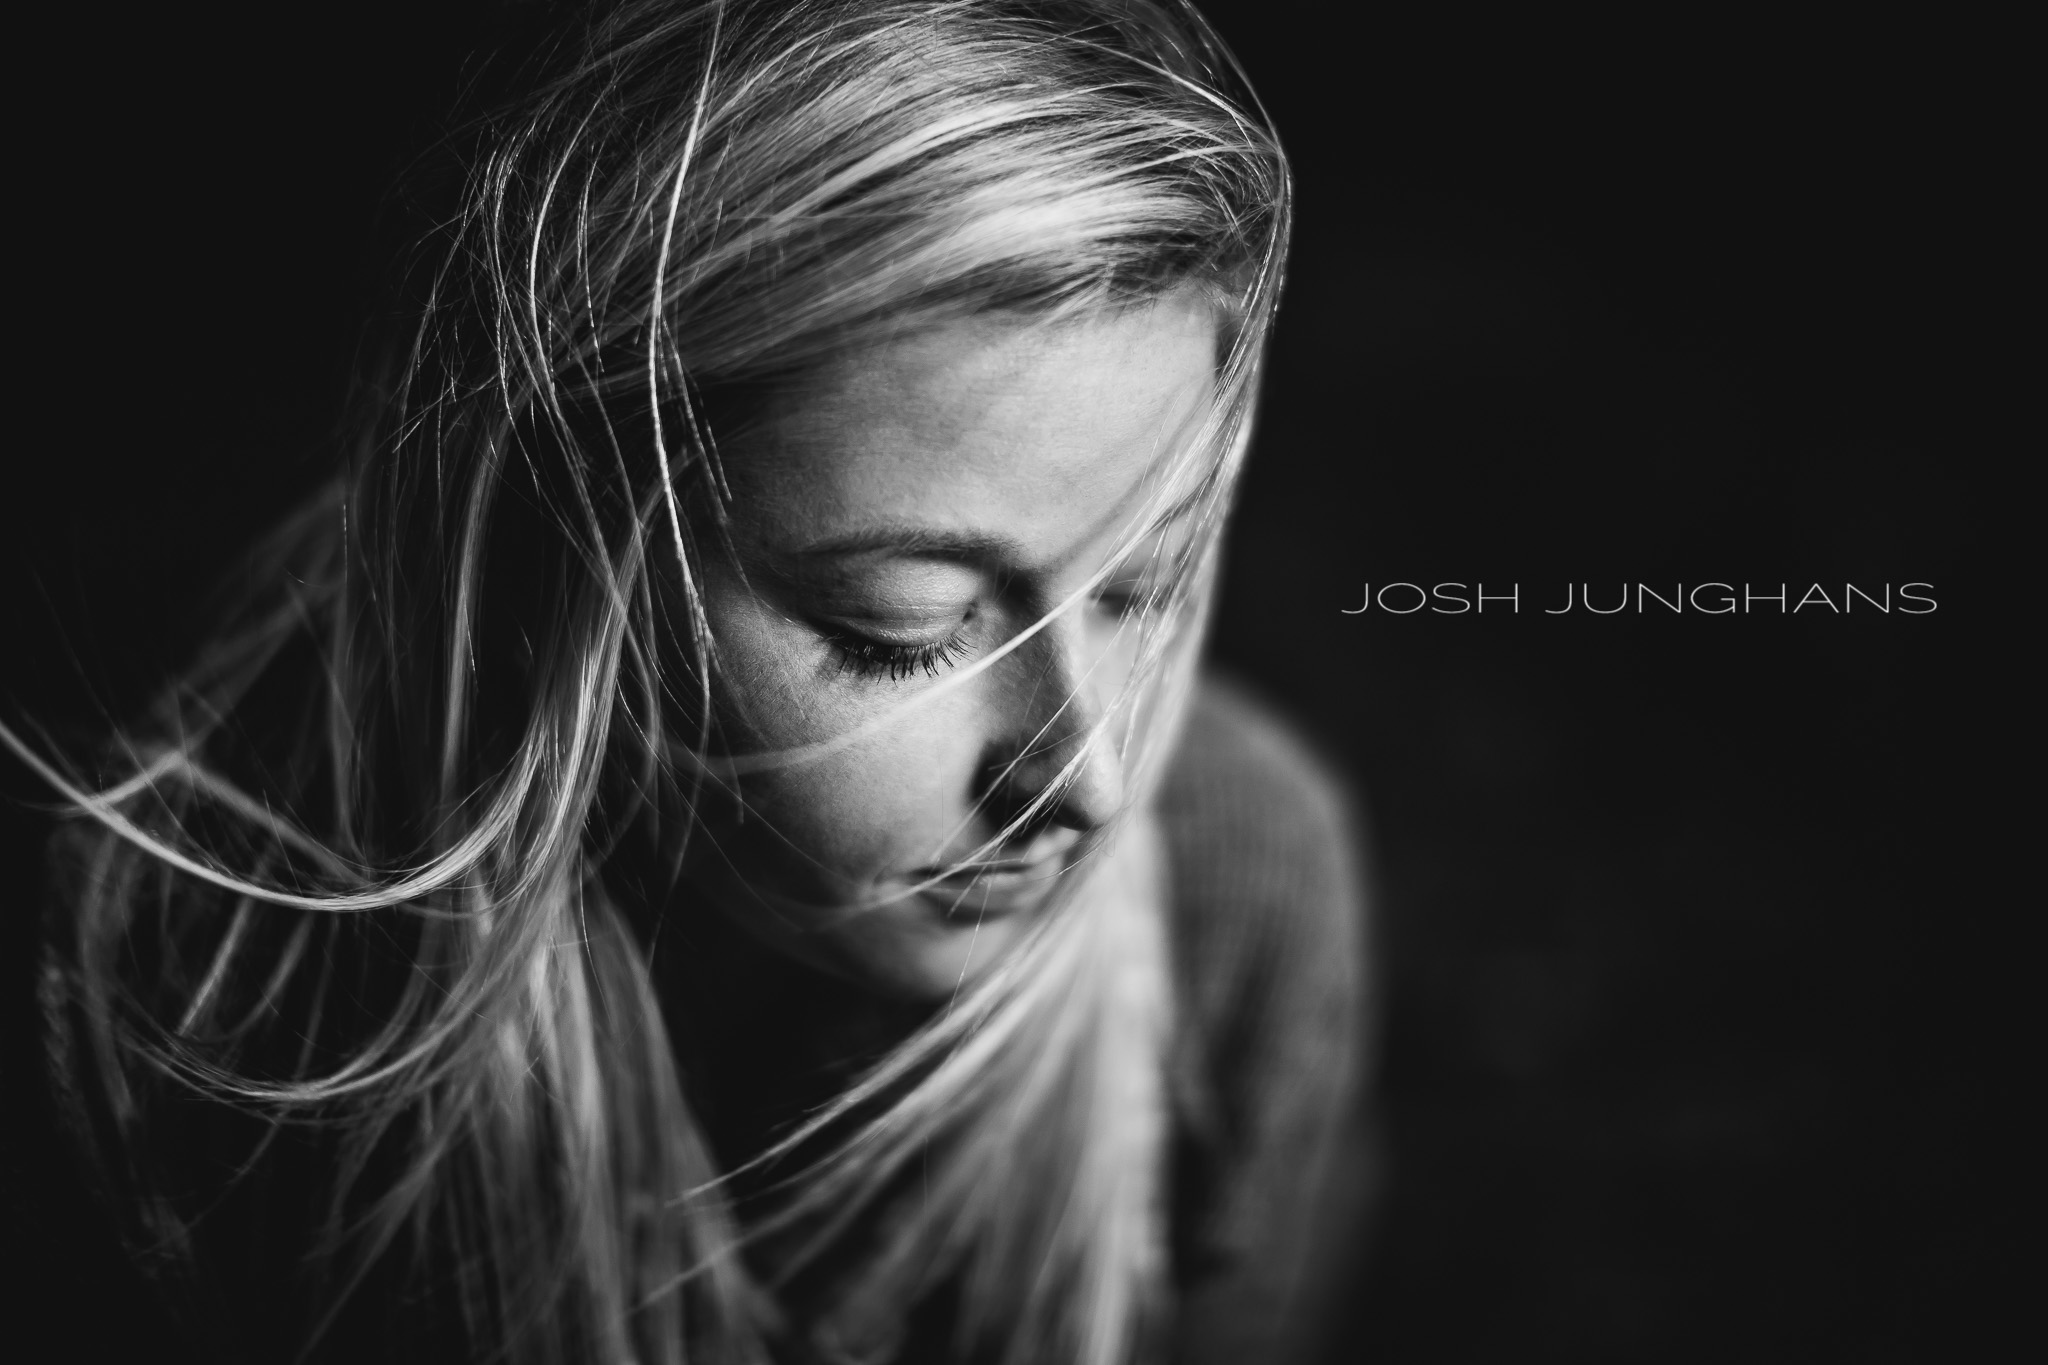 Josh Jungans - speedlight in socked beauty dish - 50mm - 1/500 - f1.2 - ISO 200   www.joshjunghansimages.com     www.facebook.com/joshjunghansimages     My friend Josh shot this image while shooting a senior session out in Kansas. The weather was not super great, and they thought about postponing the shoot. Instead they used it to their advantage and with the help Off Camera Flash (OCF) created an amazing set of senior images. Click  here  for the full shoot.